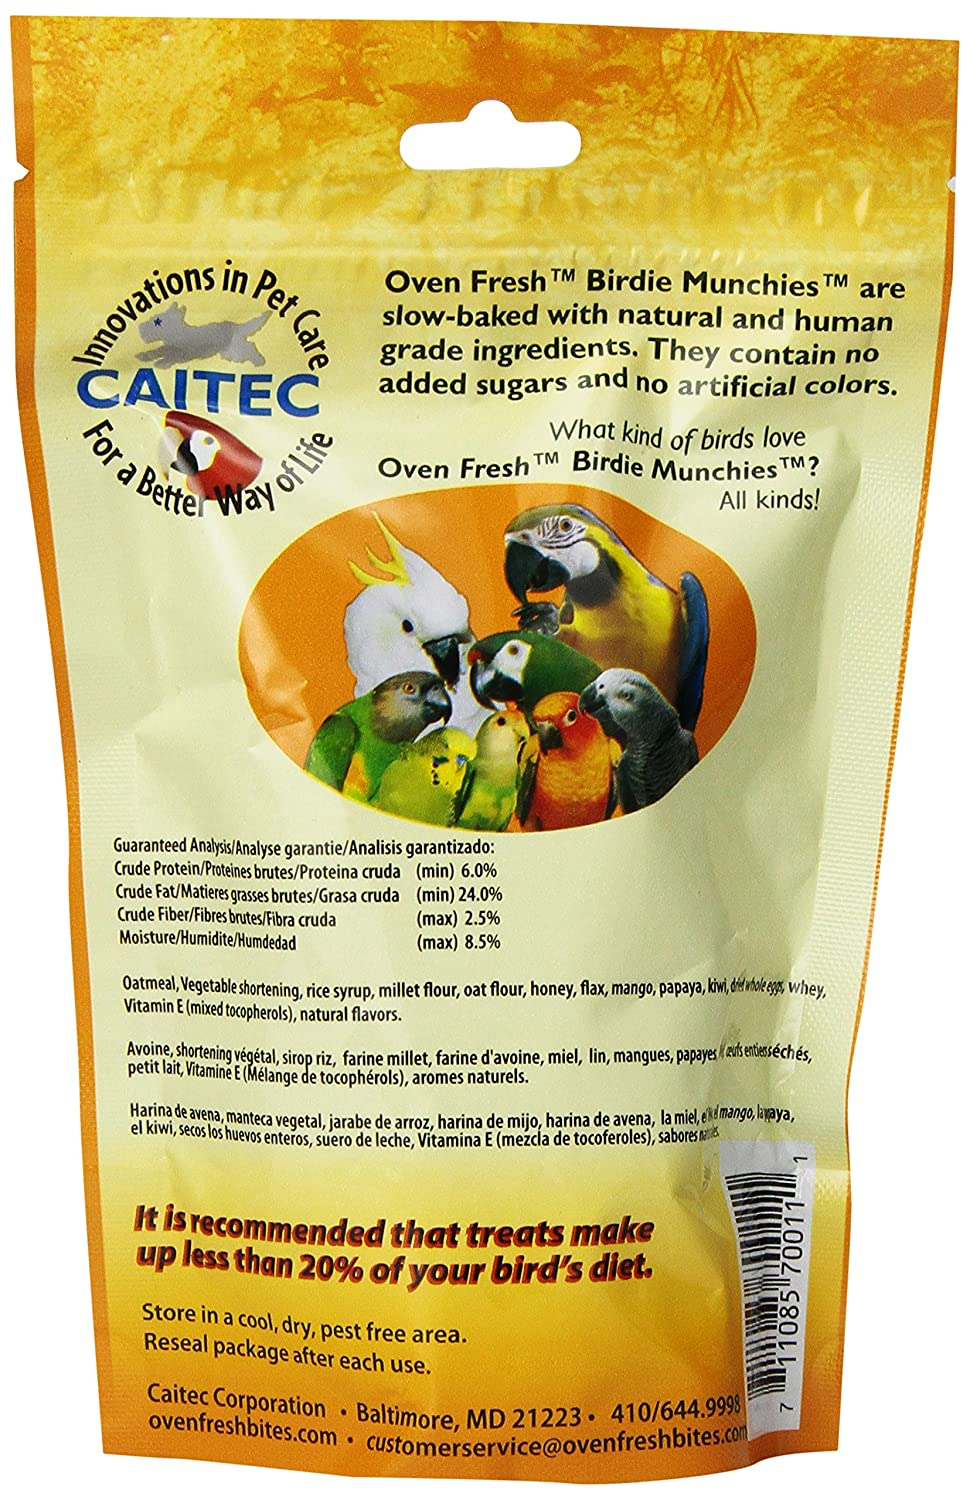 Horno dulce Bites Birdie Munchies Pet Treat, frutas tropicales, 4-Ounce: Amazon.es: Productos para mascotas